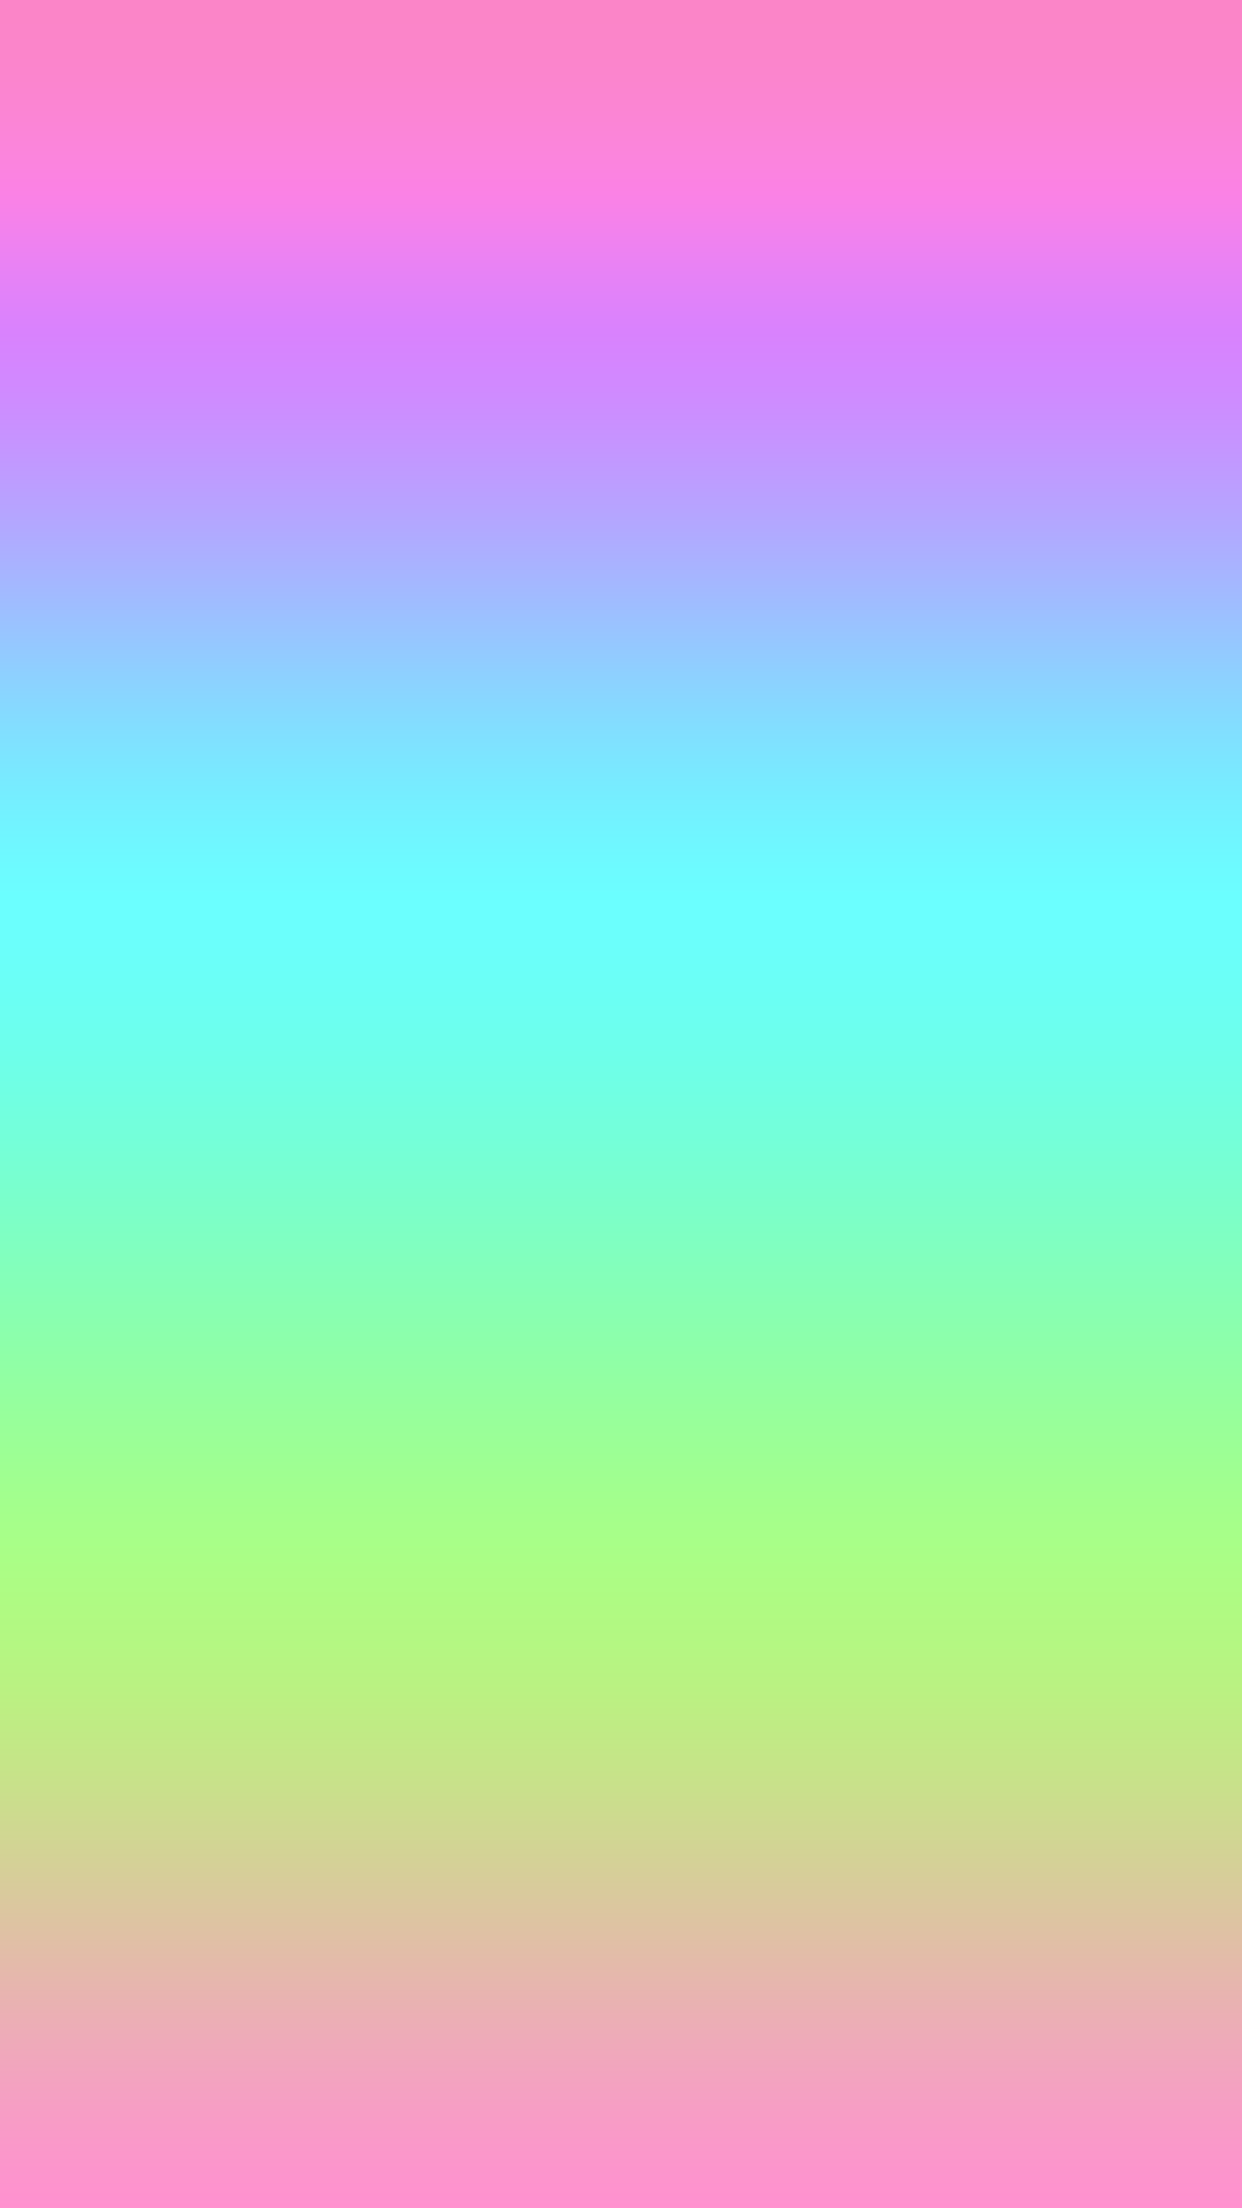 Gradient Ombre Pink Blue Purple Green Wallpaper Hd Iphone